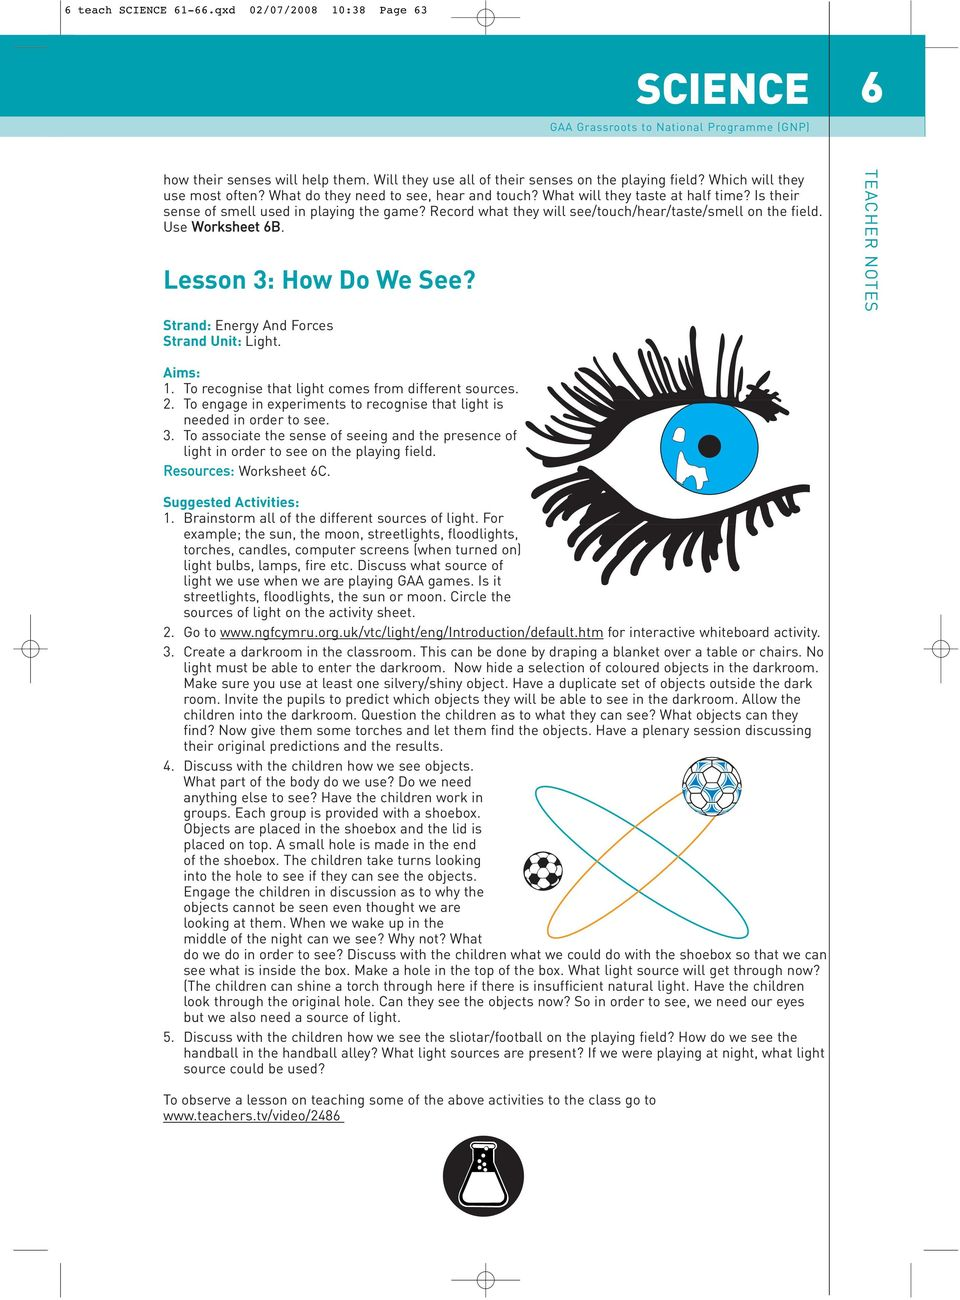 Use Worksheet 6B. Lesson 3: How Do We See? Strand: Energy And Forces Strand Unit: Light. 1. To recognise that light comes from different sources. 2.